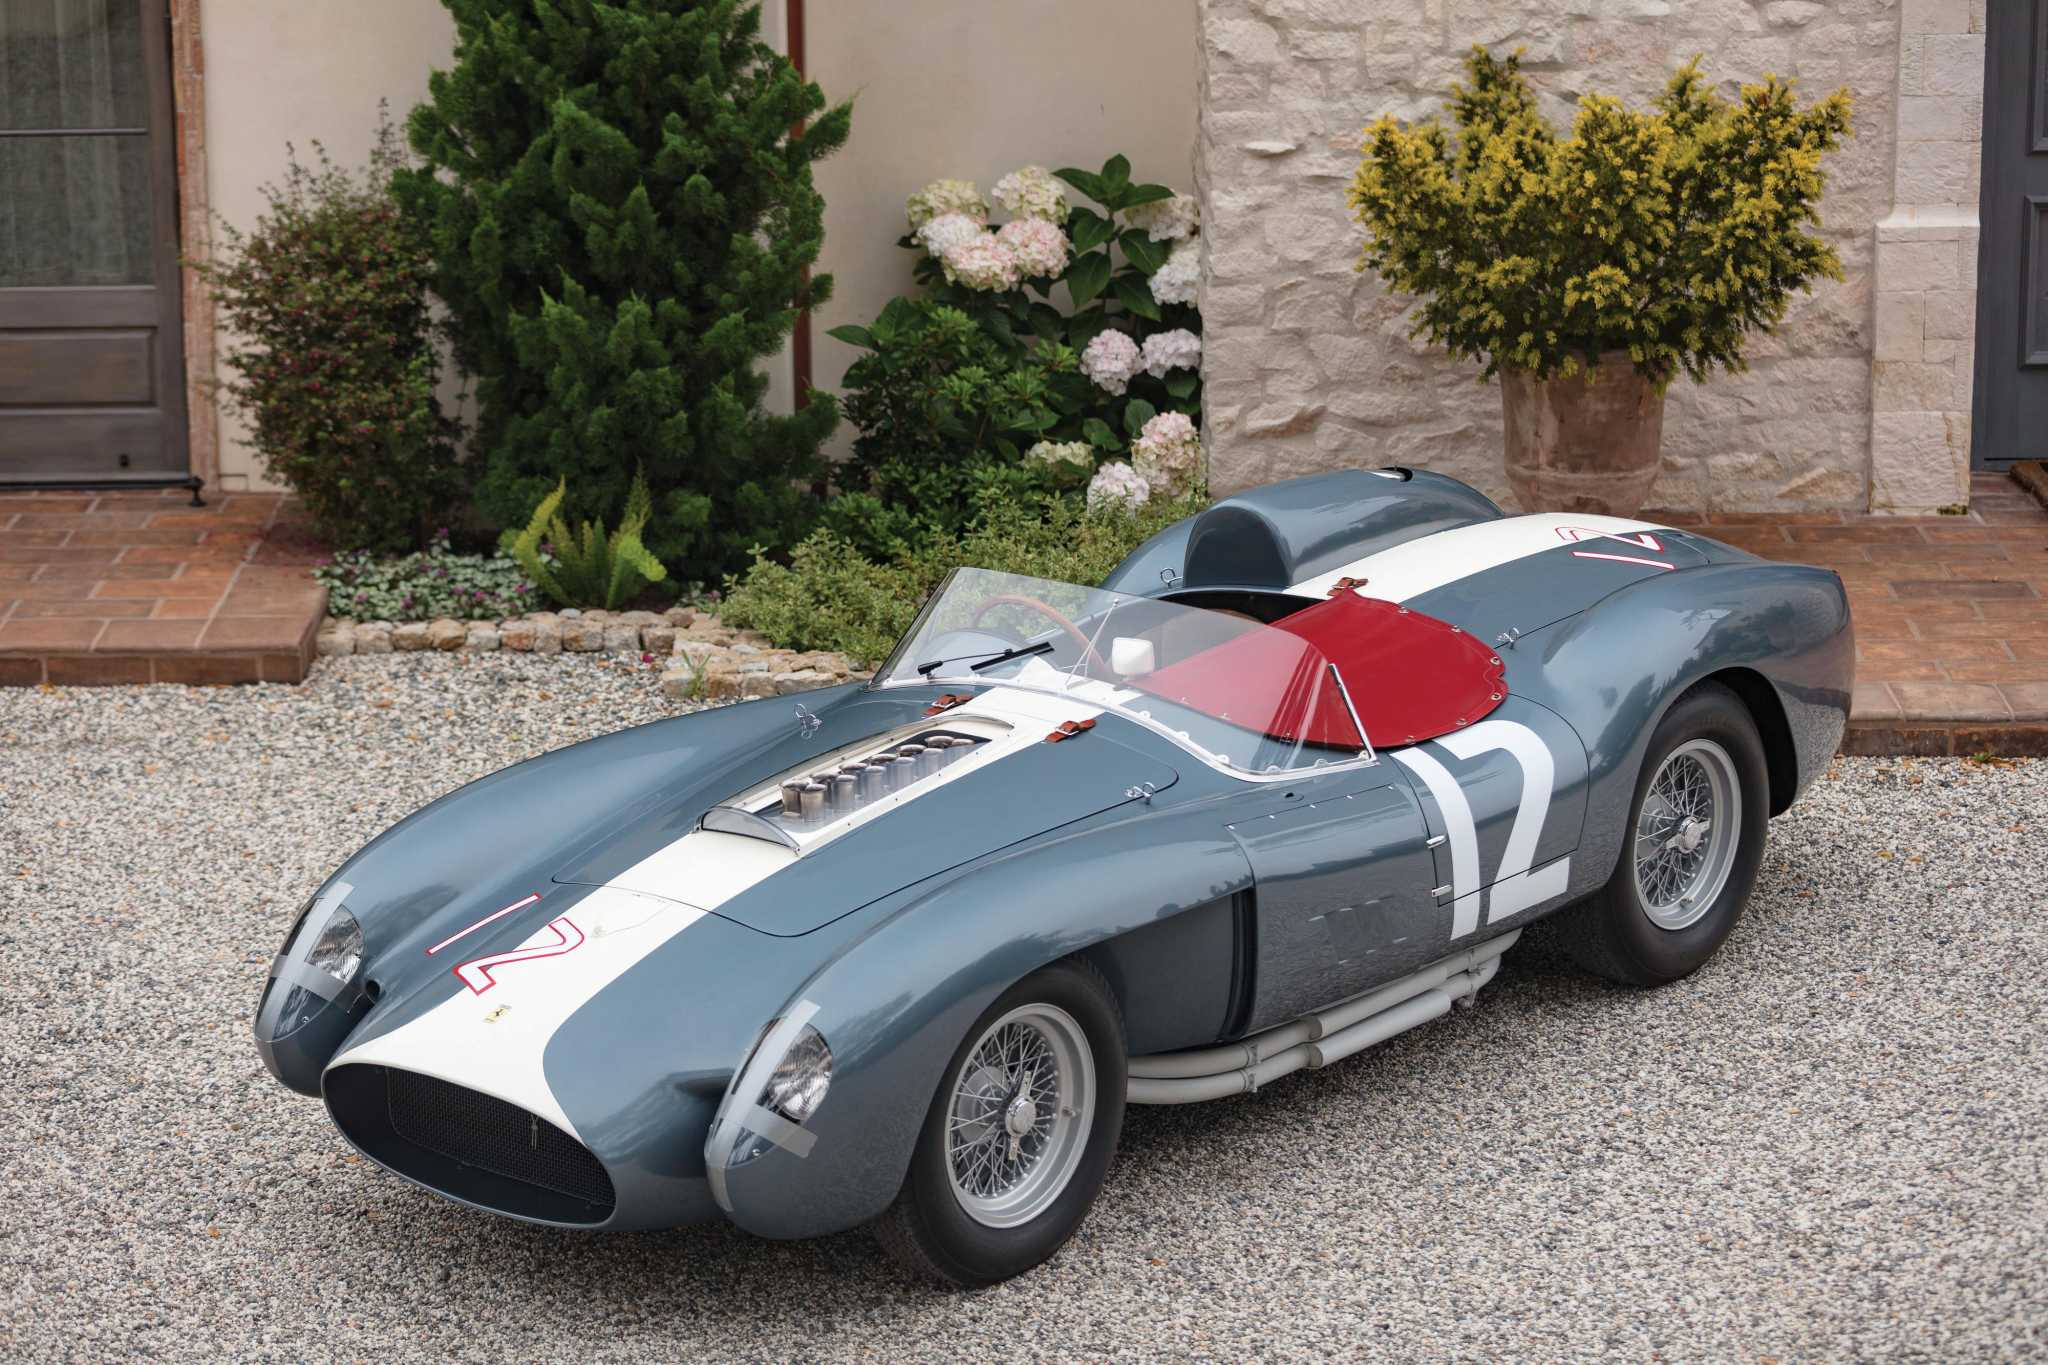 Rare Ferrari 335 S Spyder wows, wins global 'Best of the Best' honors